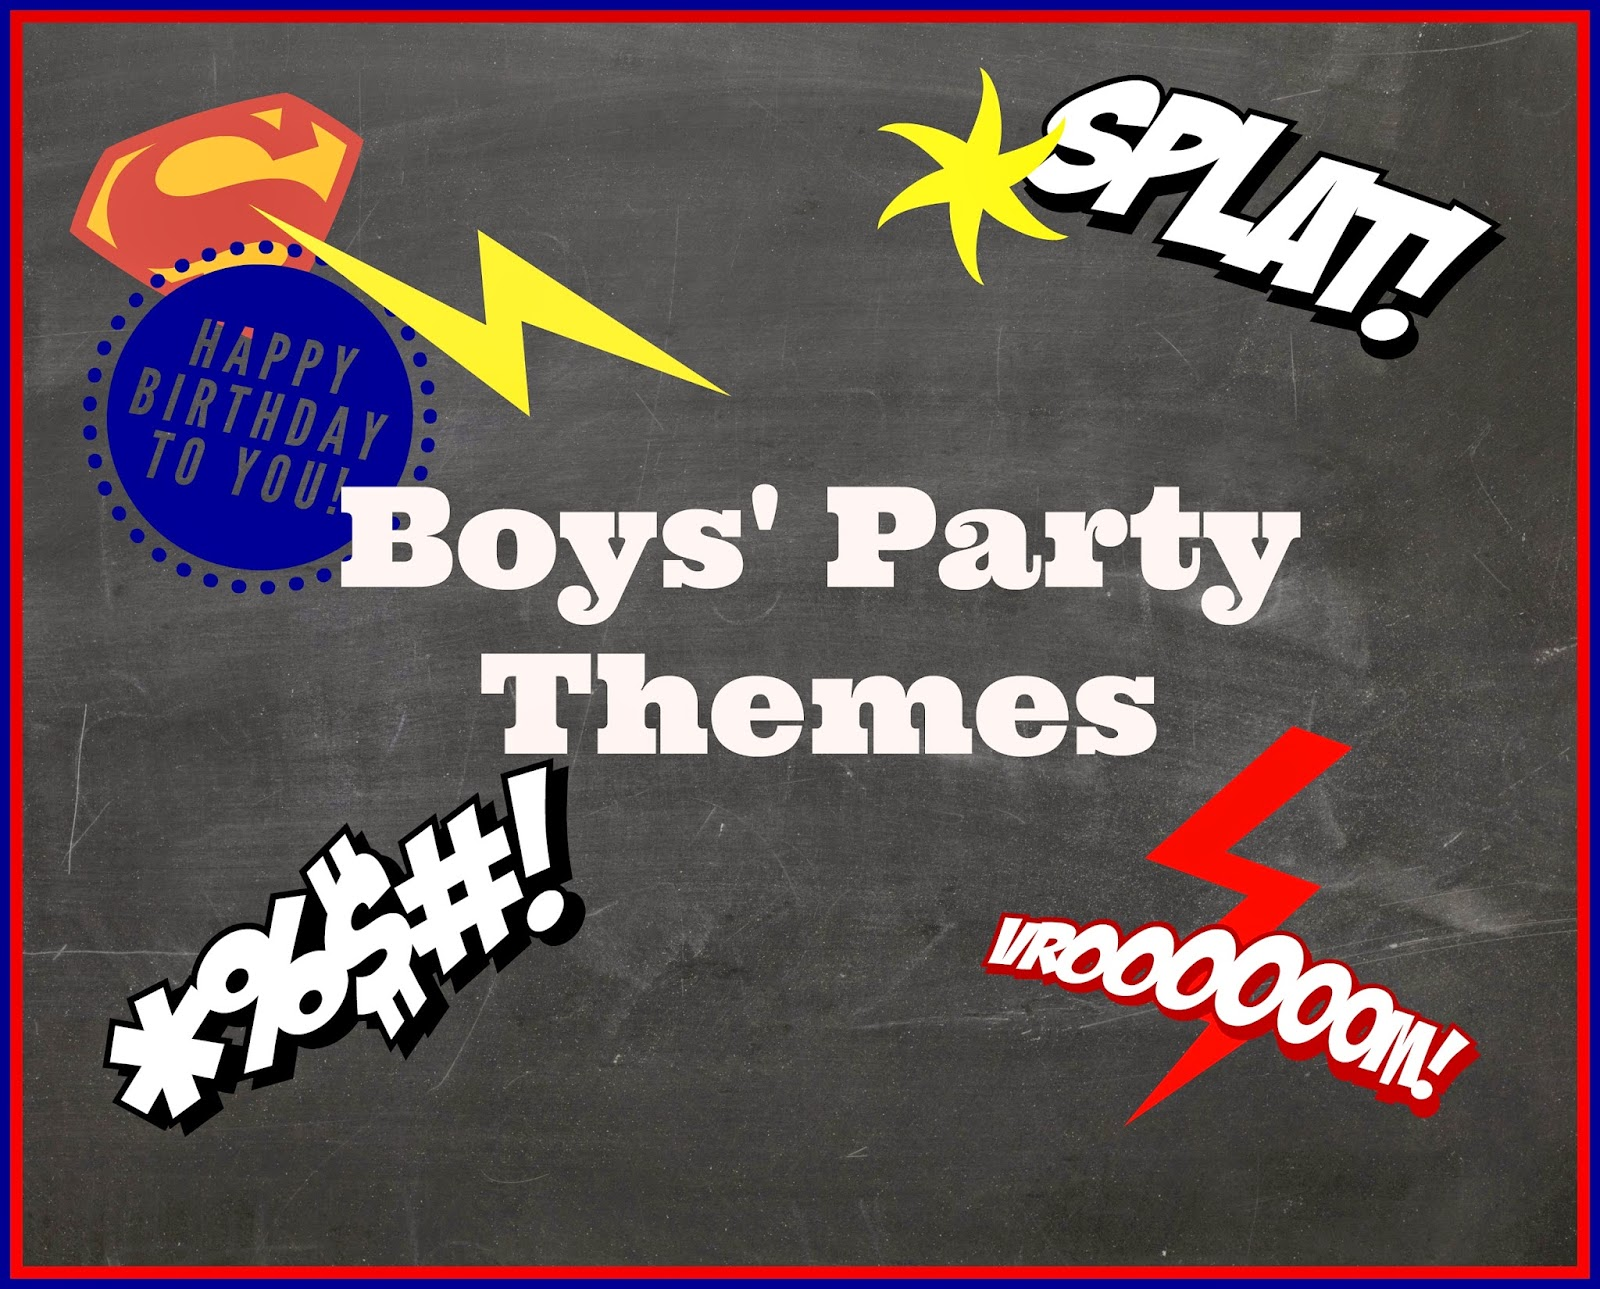 6 Boy's Party Themes